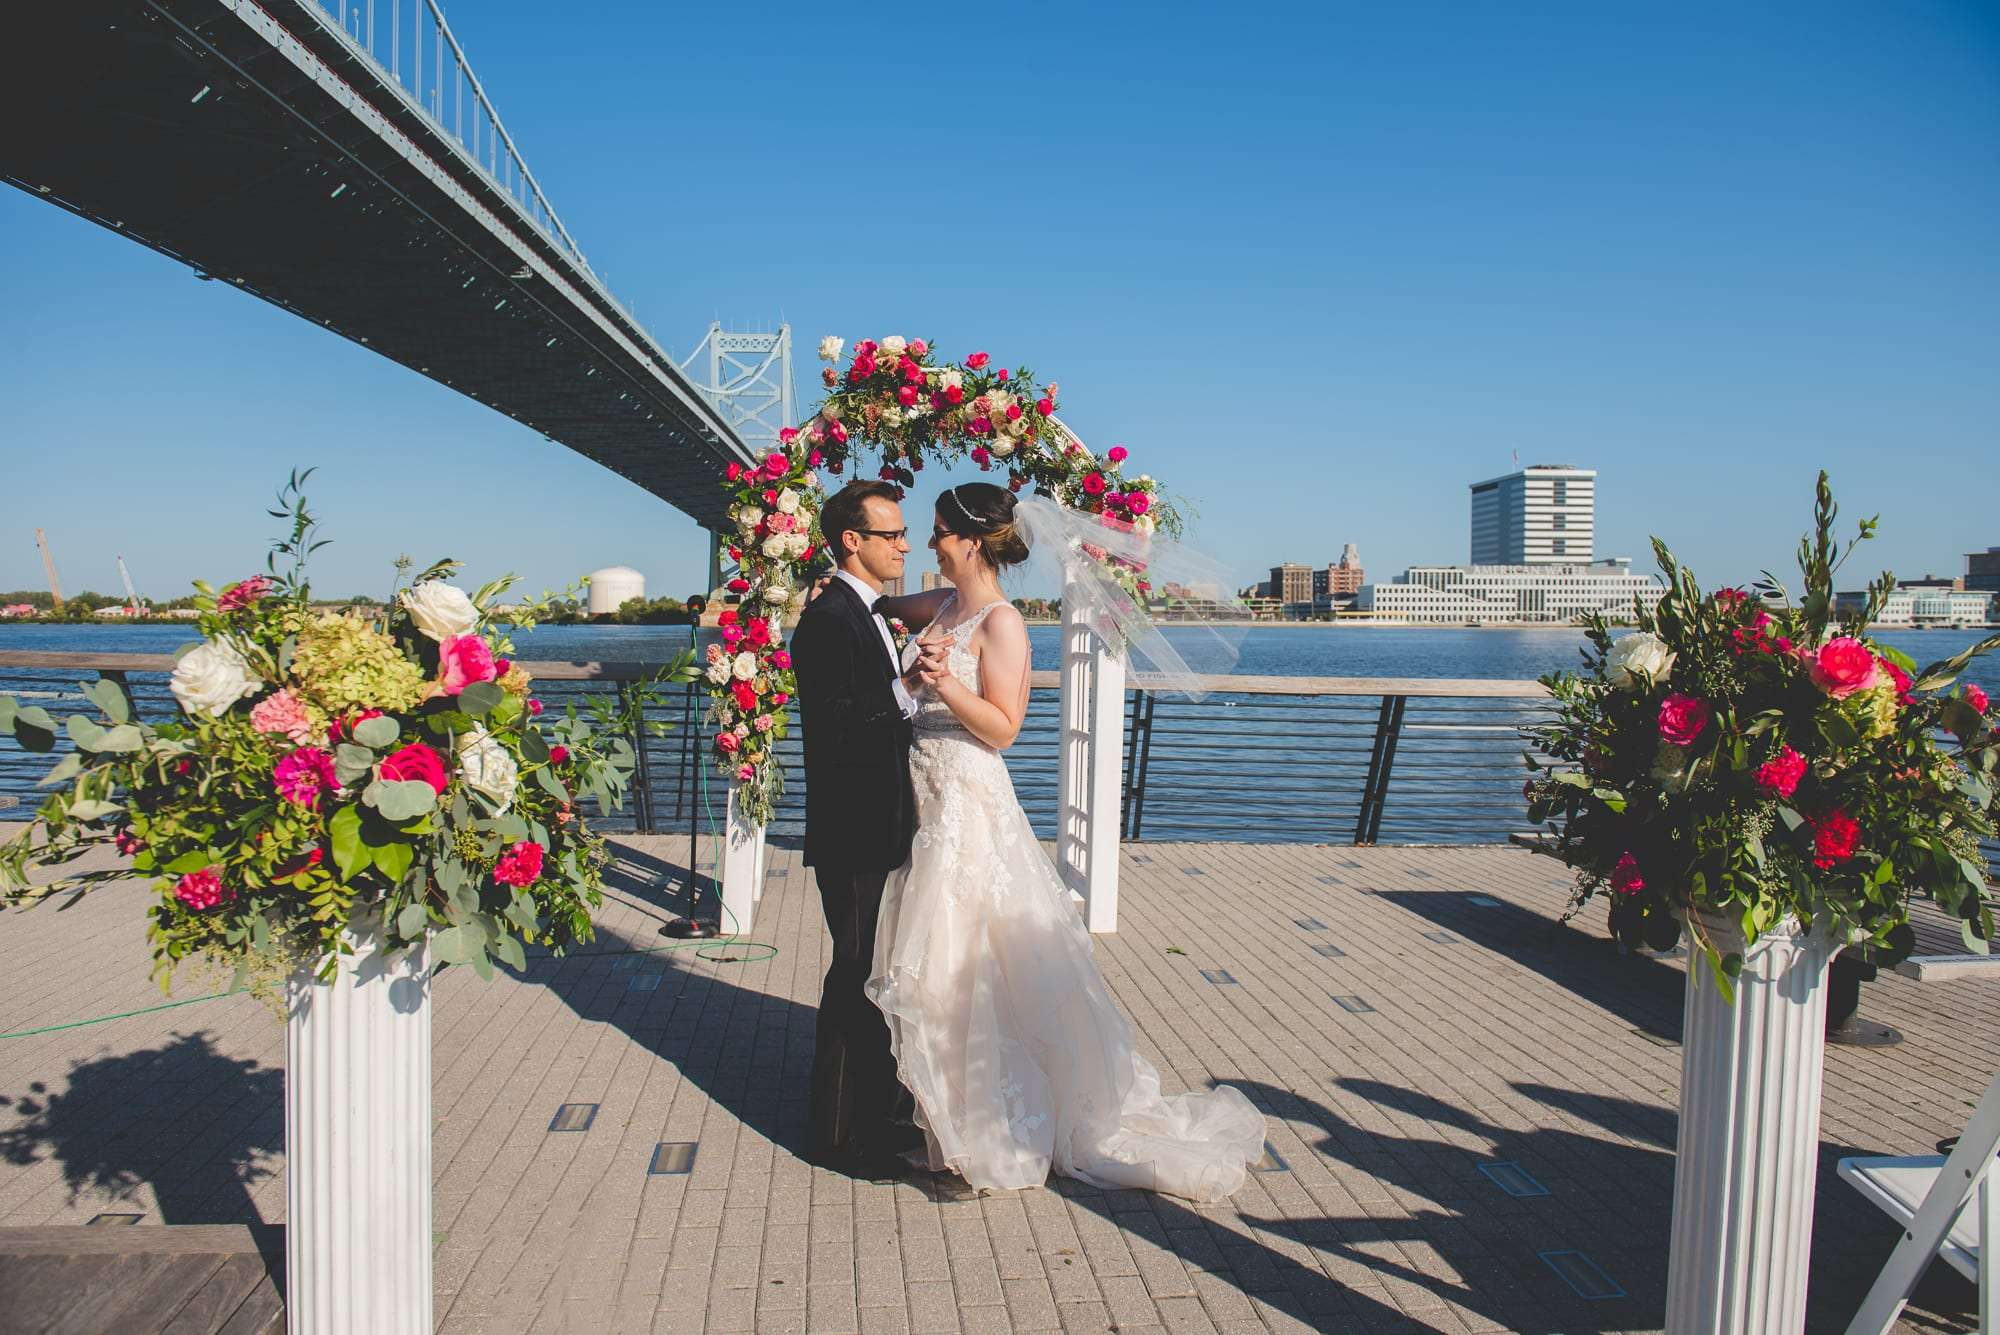 Philadelphia wedding photography at Race street pier phillt